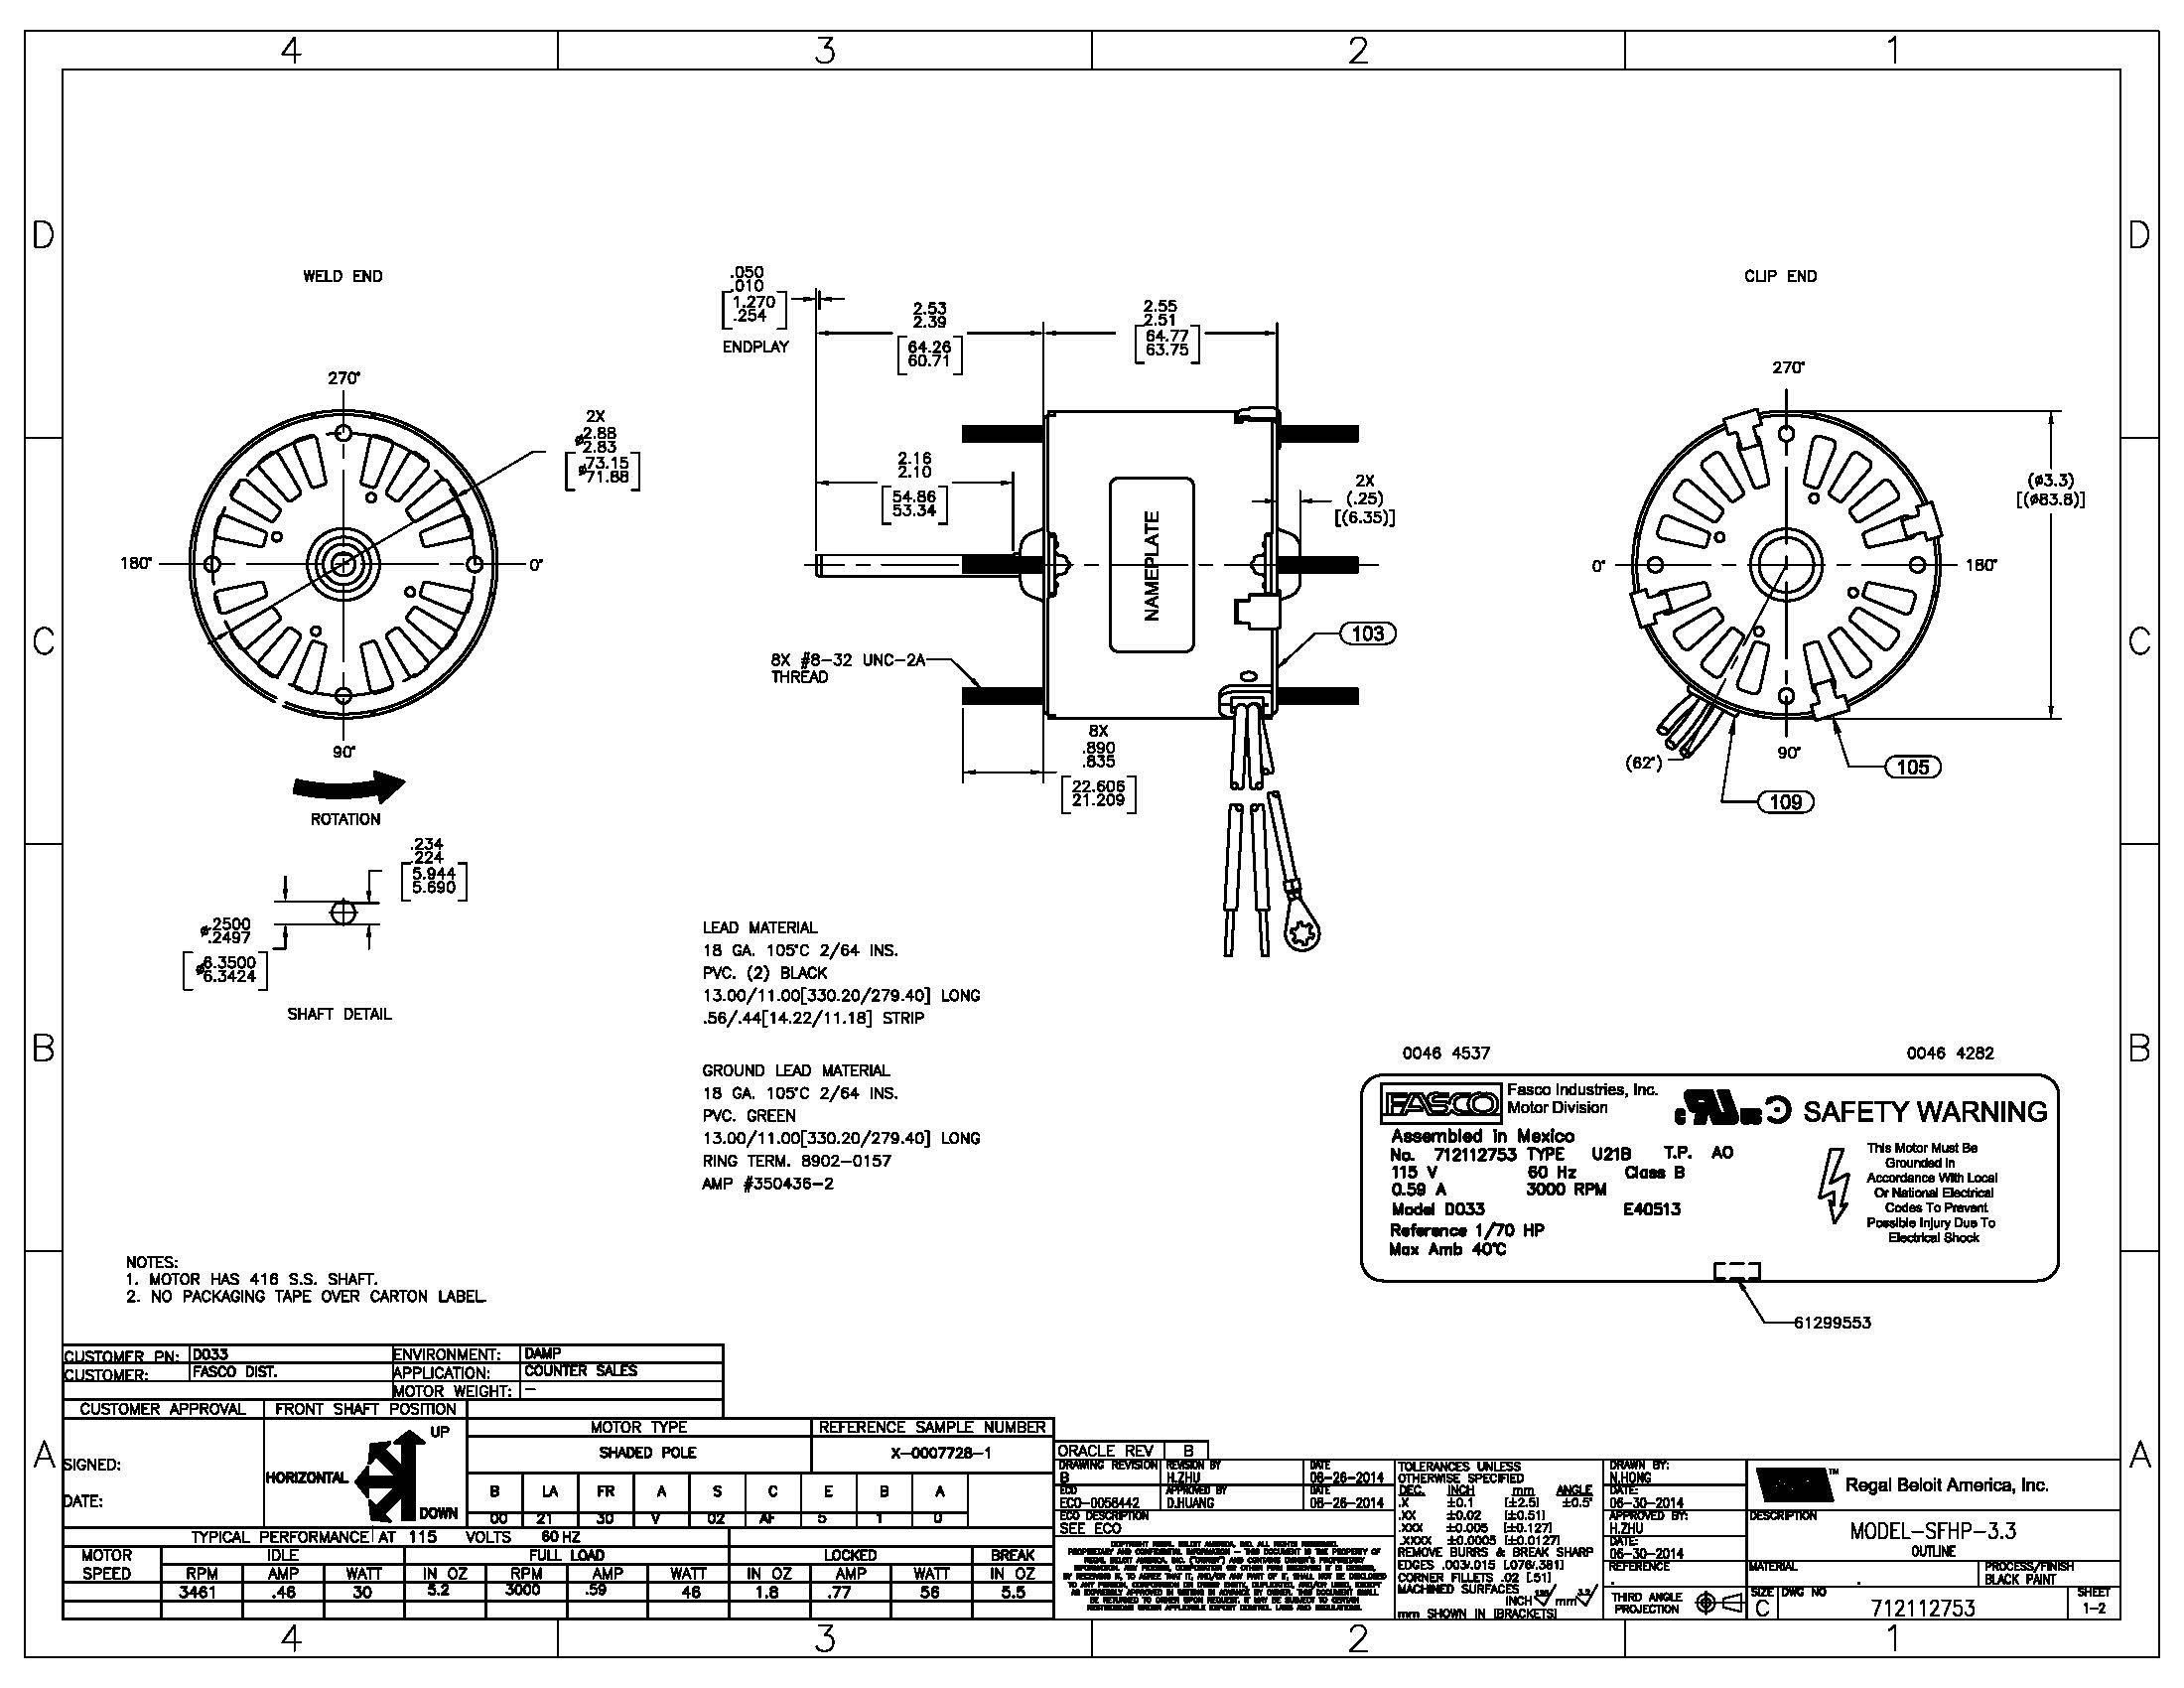 squirrel cage fan wiring diagram switch wiring diagram furnace fan wiring  diagram fasco motor wiring diagram